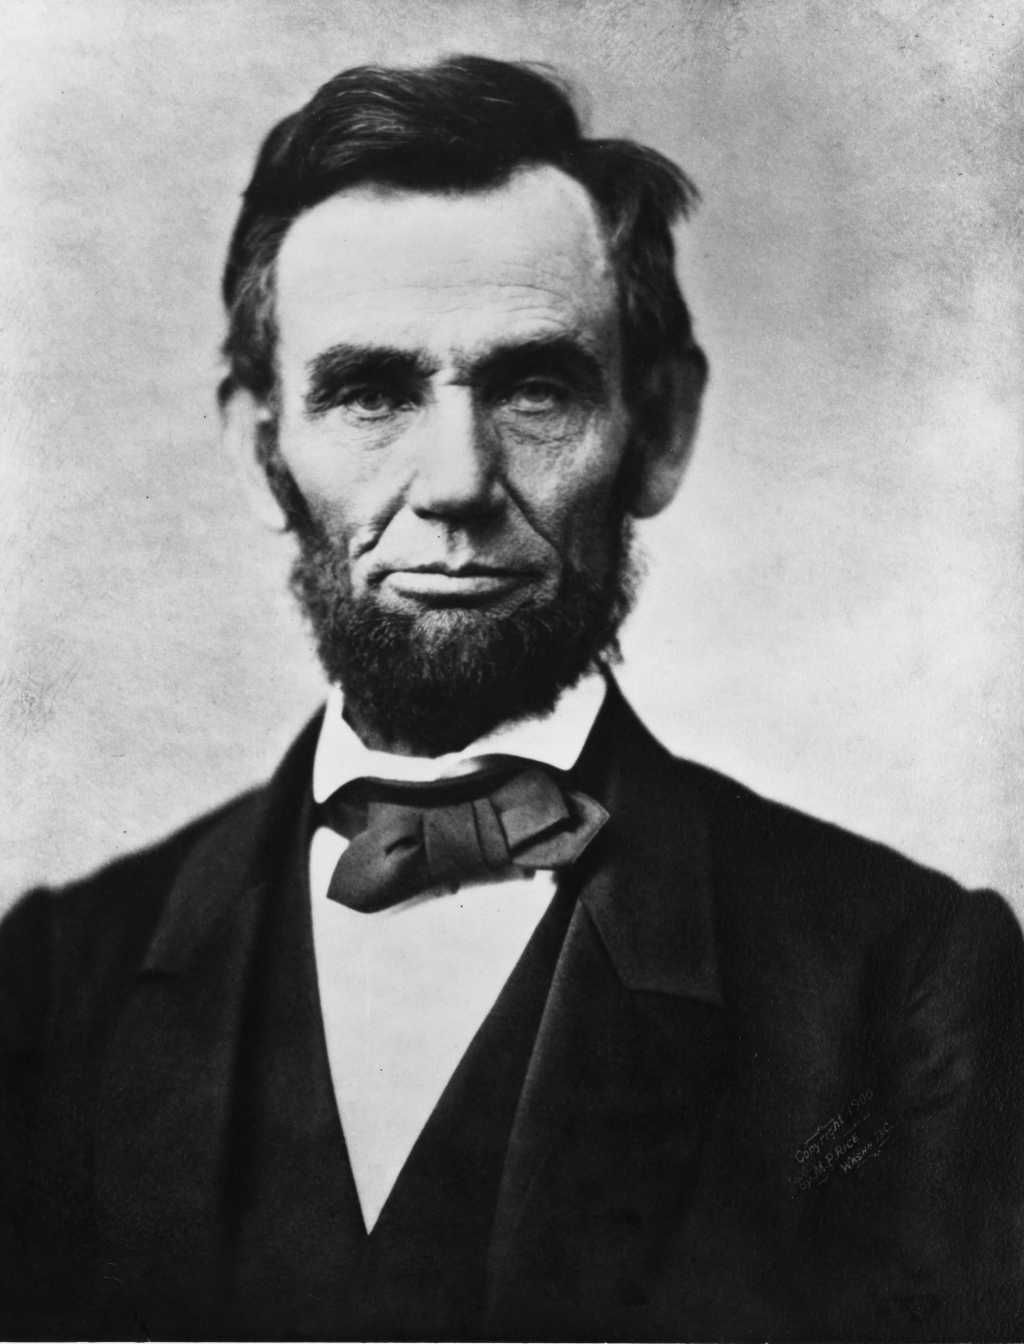 """Honest Abe        1.  Lincoln was self-taught:  Growing up with a father who didn't respect learning, Lincoln fought to be a man of words.  A voracious reader, he would often be seen sitting and reading for hours.  His own father interpreted this as """"lazy"""", but Abe was not discouraged.  In fact, he was somebody who read and learned from others all his life.  In this same way, all leaders must be self-motivated, curious learners.  If you stop learning once you leave school yo..."""